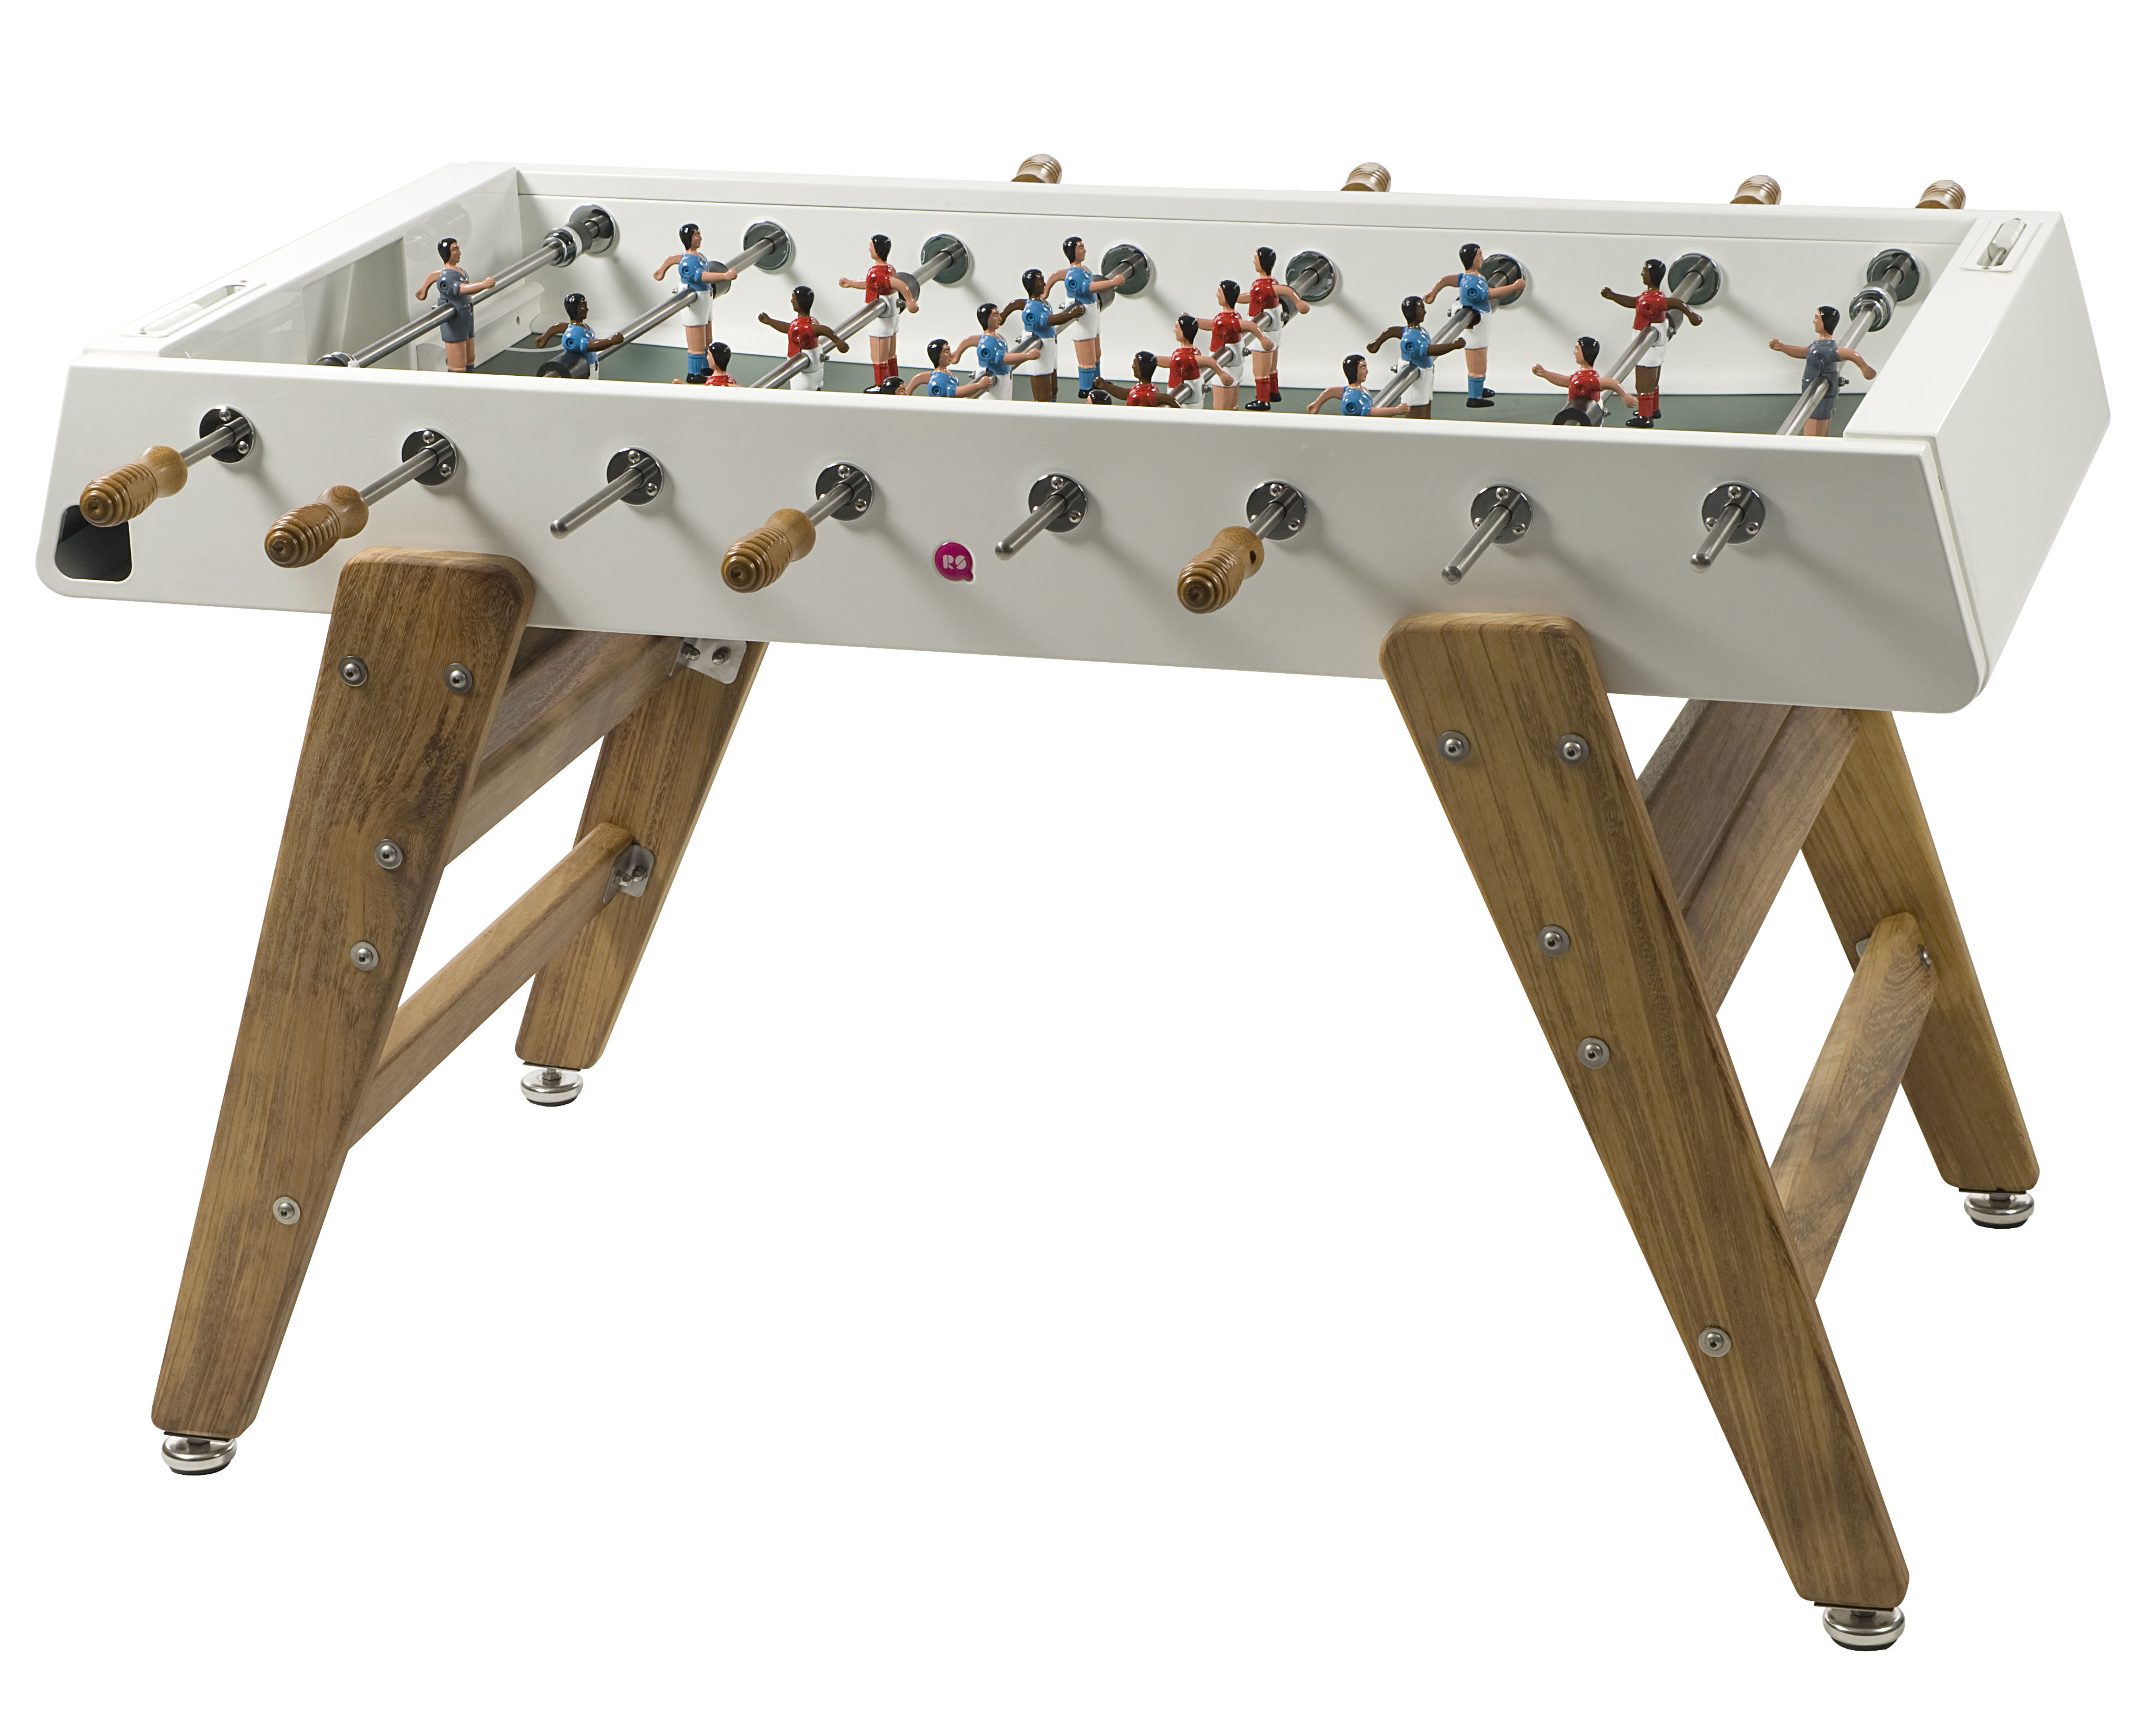 Furniture - Miscellaneous furniture - RS#3 Wood Table football - L 151 cm by RS BARCELONA - White / Wood - Iroko wood, Stainless steel